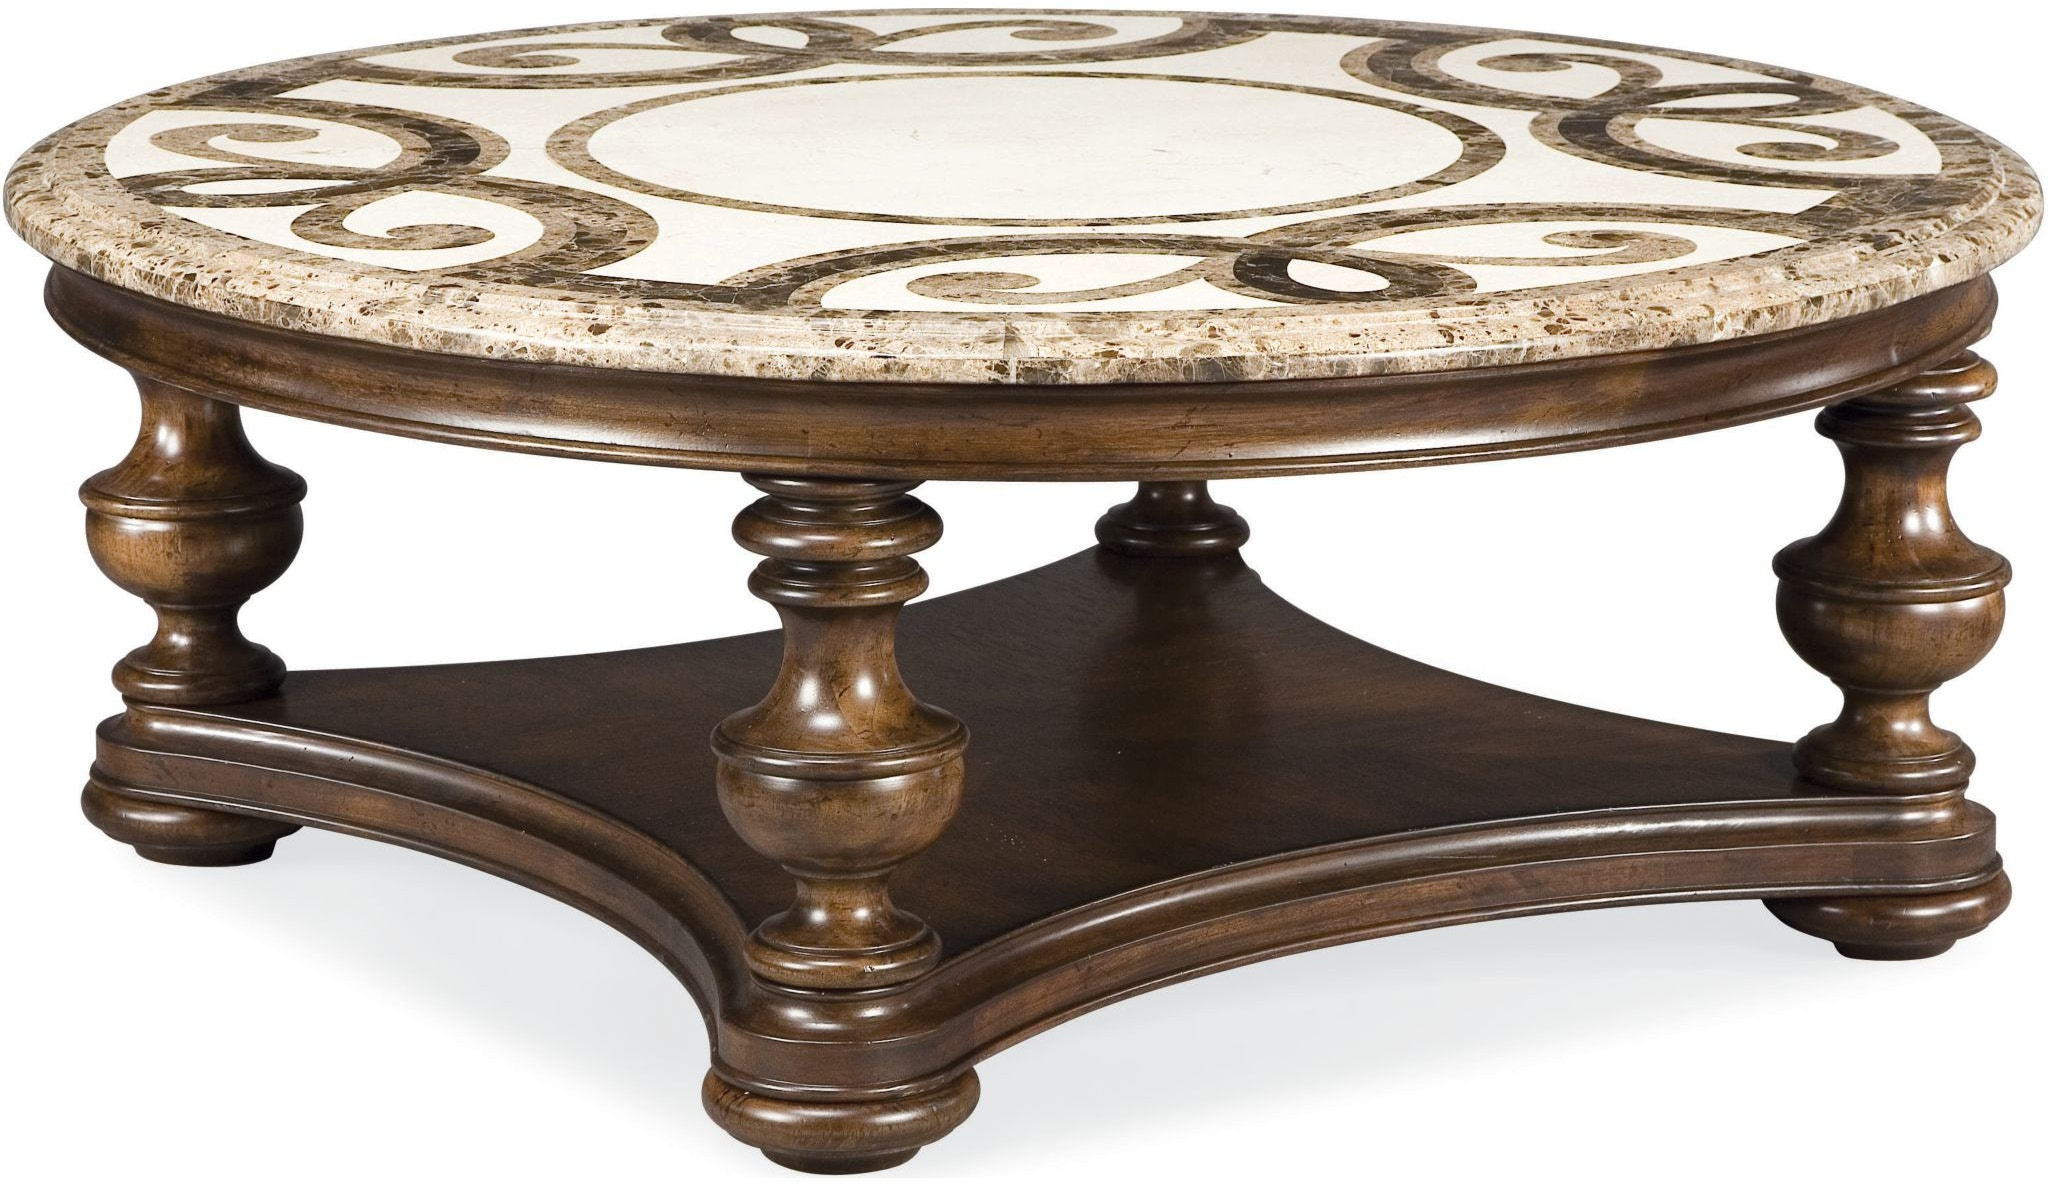 Thomasville Living Room Trebbiano Round Cocktail Table Stone Top 43632 173 Whitley Furniture